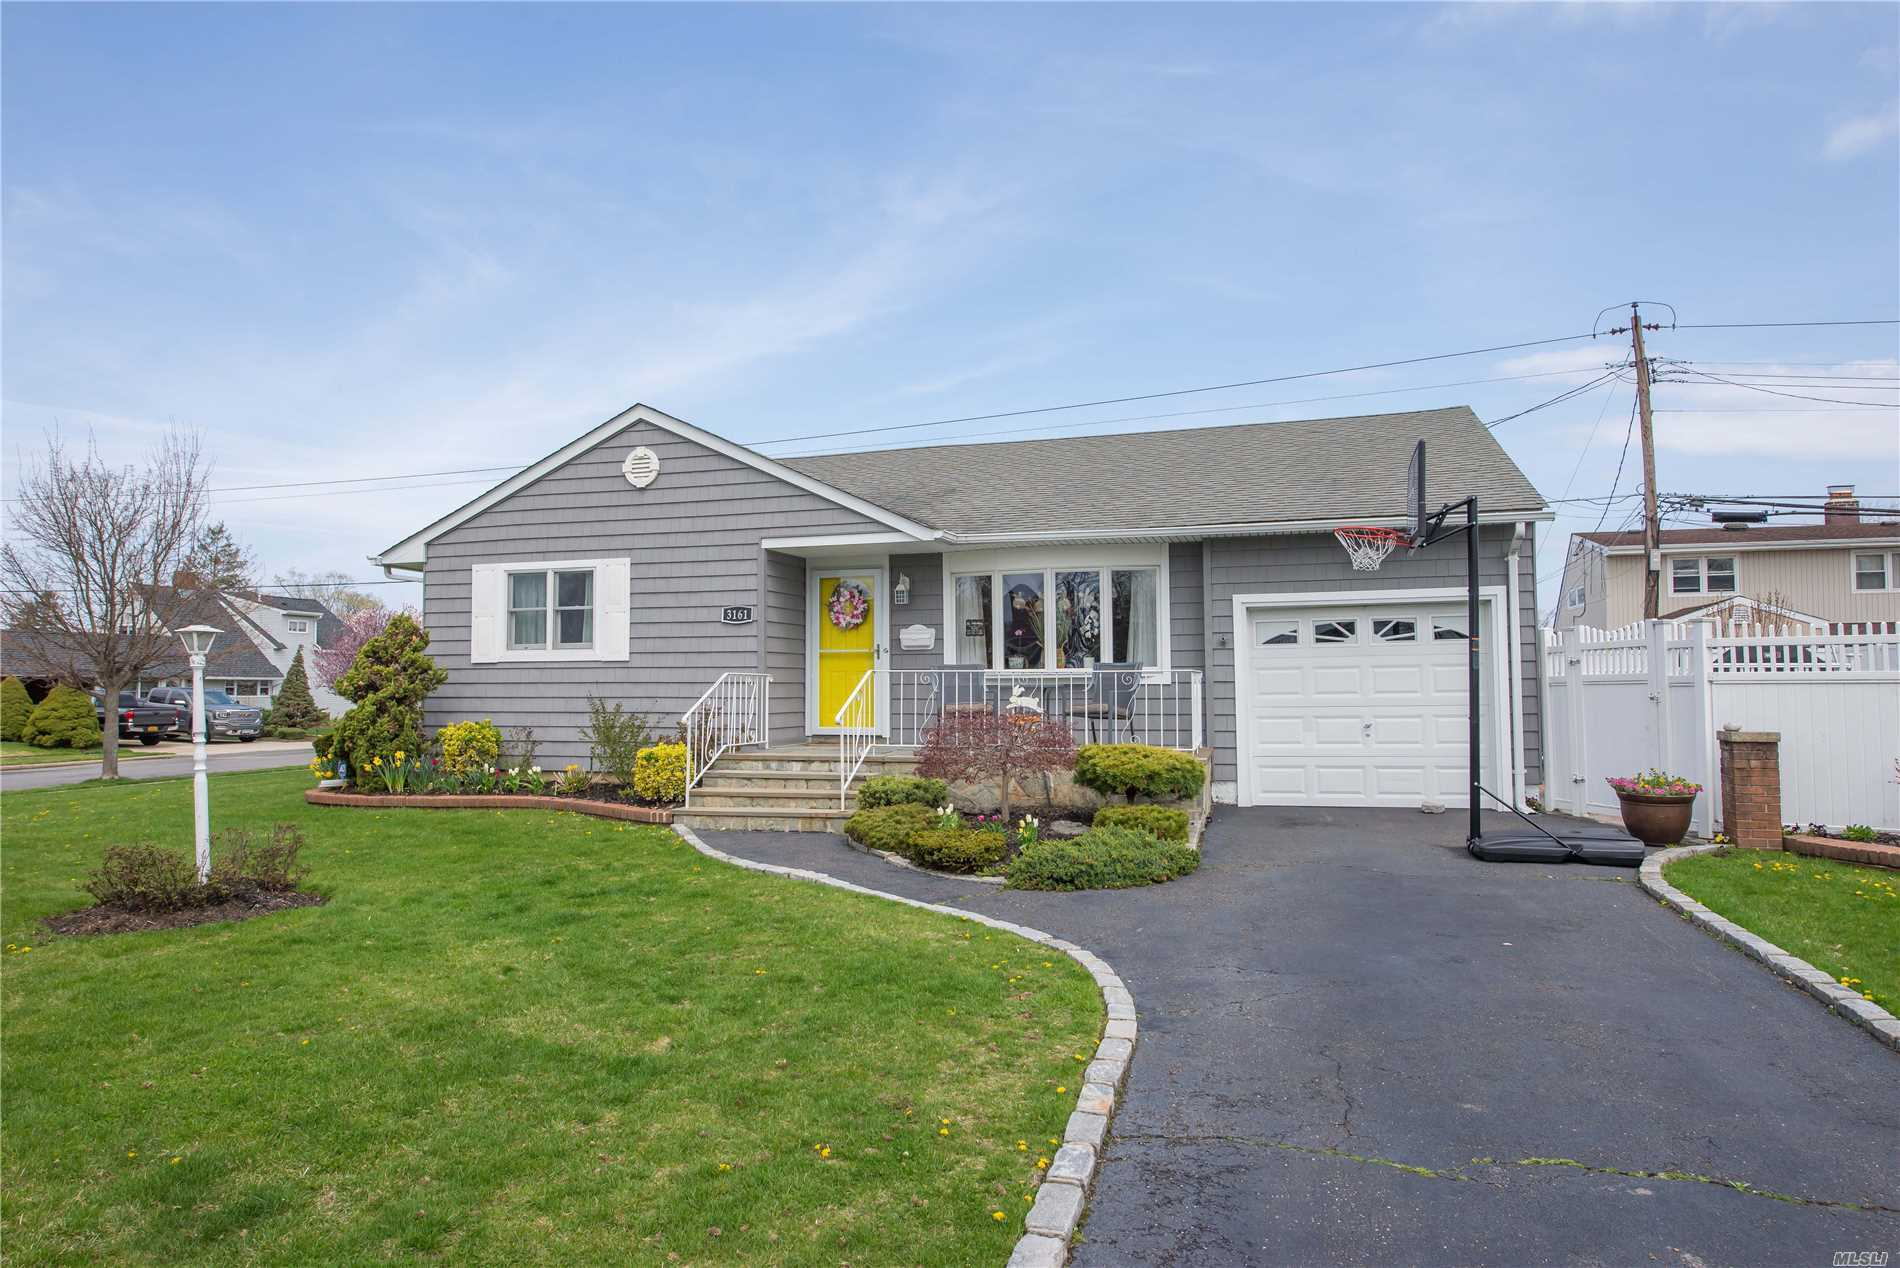 This Beautifully Remolded Expanded Ranch Features Tons Of Updates, Including A New Bathroom, Crown Moldings, New Windows, New Slider And Front Refacing. Plenty Of Storage And Room To Entertain, Plus A Finished Basement With Den, Playroom/Exercise Room. Move Right In.